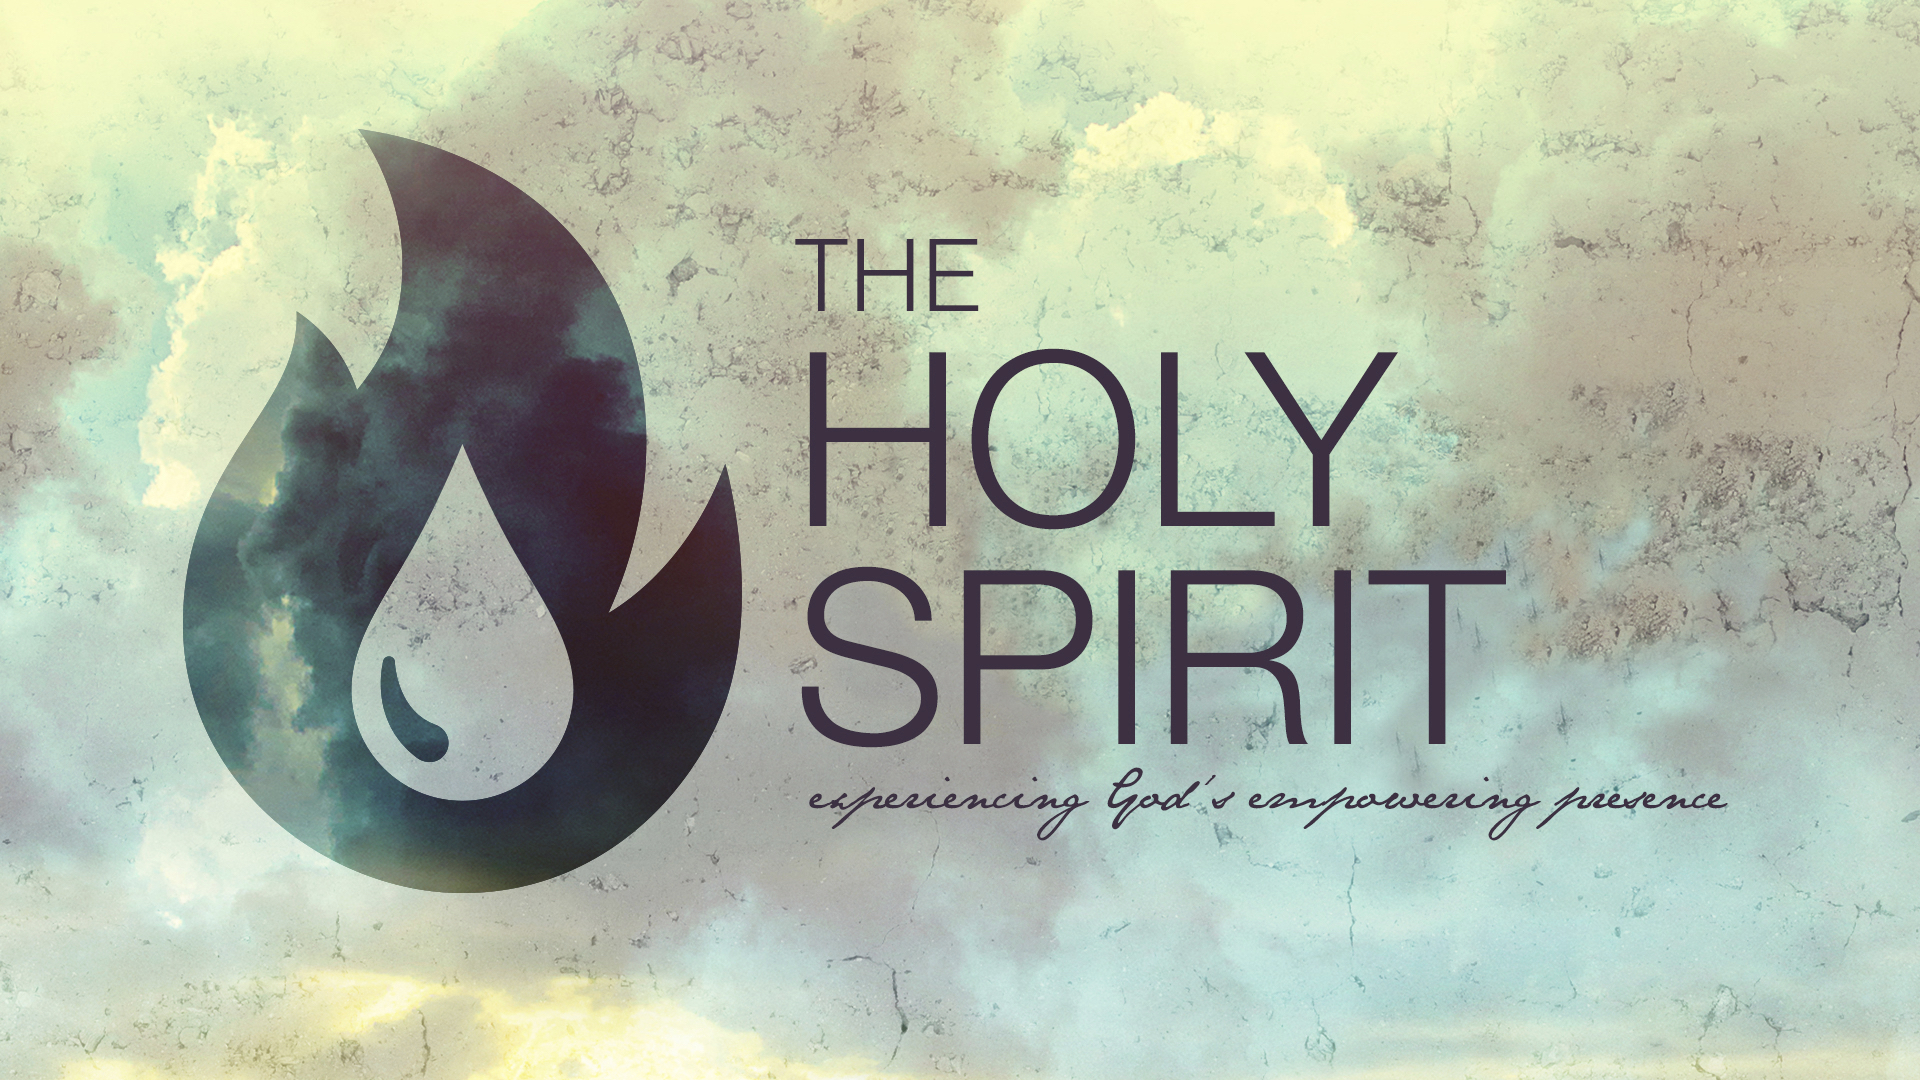 THE HOLY SPIRIT: EXPERIENCING GOD'S EMPOWERING PRESENCE | SERIES - WHO IS THE HOLY SPIRIT? | 3.11.2018 | WATCHHUNGERING & THIRSTING FOR MORE | 3.18.2018 | WATCHEXPERIENCING HIS GIFTS | 3.25.2018 | WATCH